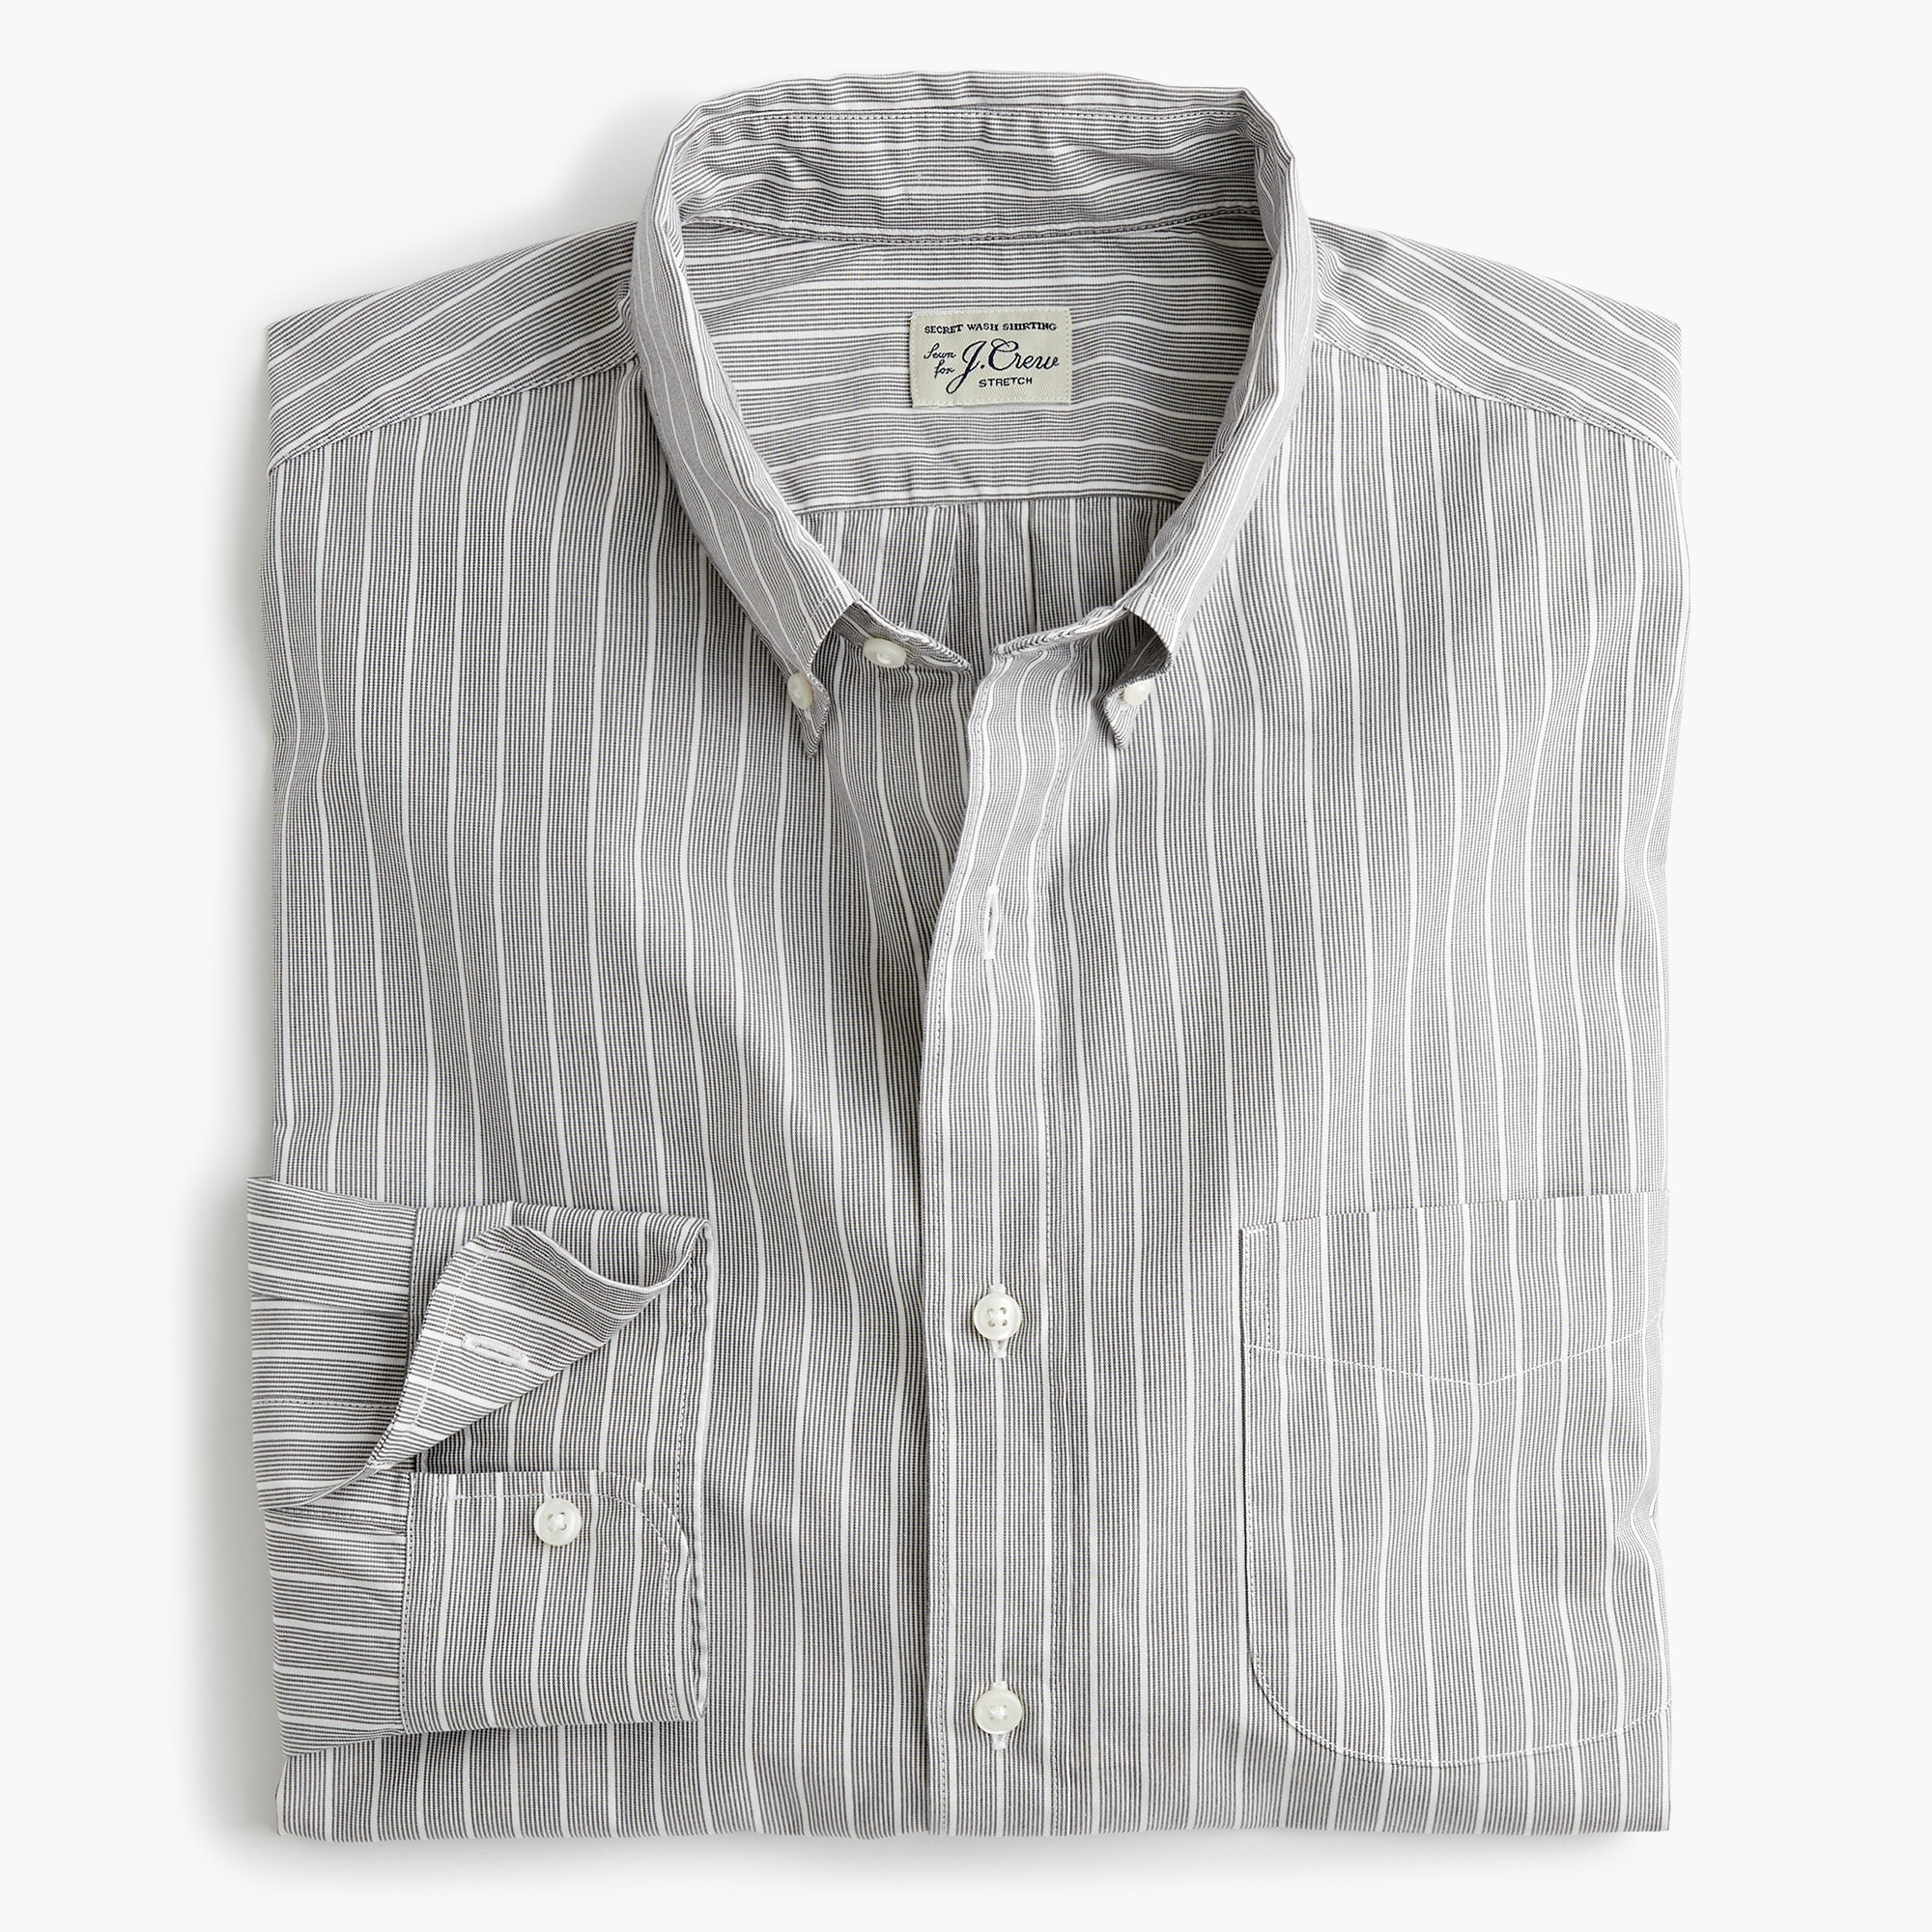 mens Untucked stretch Secret Wash shirt in grey microstripe